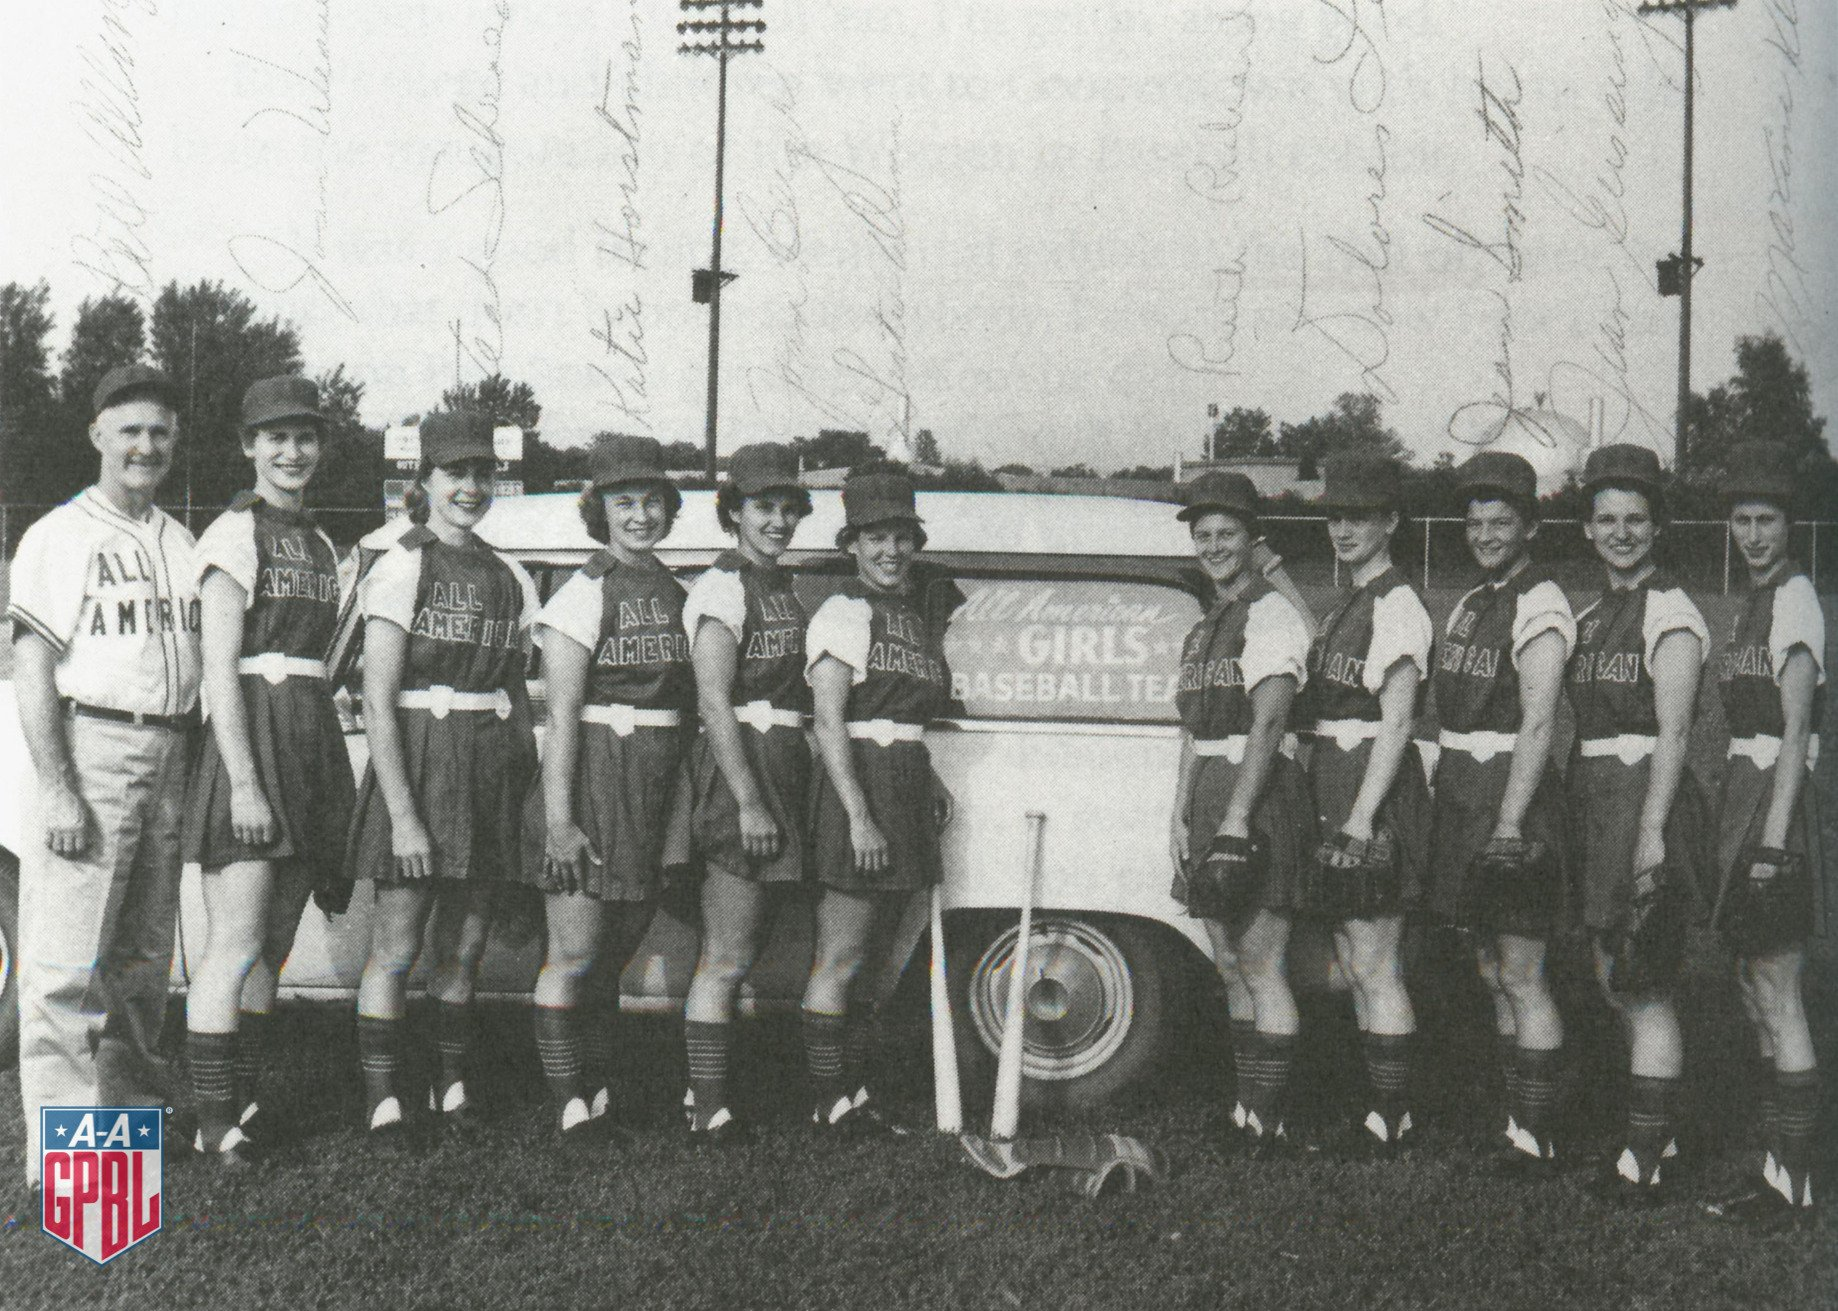 After the #AAGPBL folded in 1954 a barnstorming team call the All-Americans (or Allington's All-Stars) was formed to travel the U.S. to keep the League alive & spark interest. This effort lasted until 1958.Bill Allington was a long time manager of the Peaches & Daisies (1945-'54) https://t.co/C3ZYL0sCwN